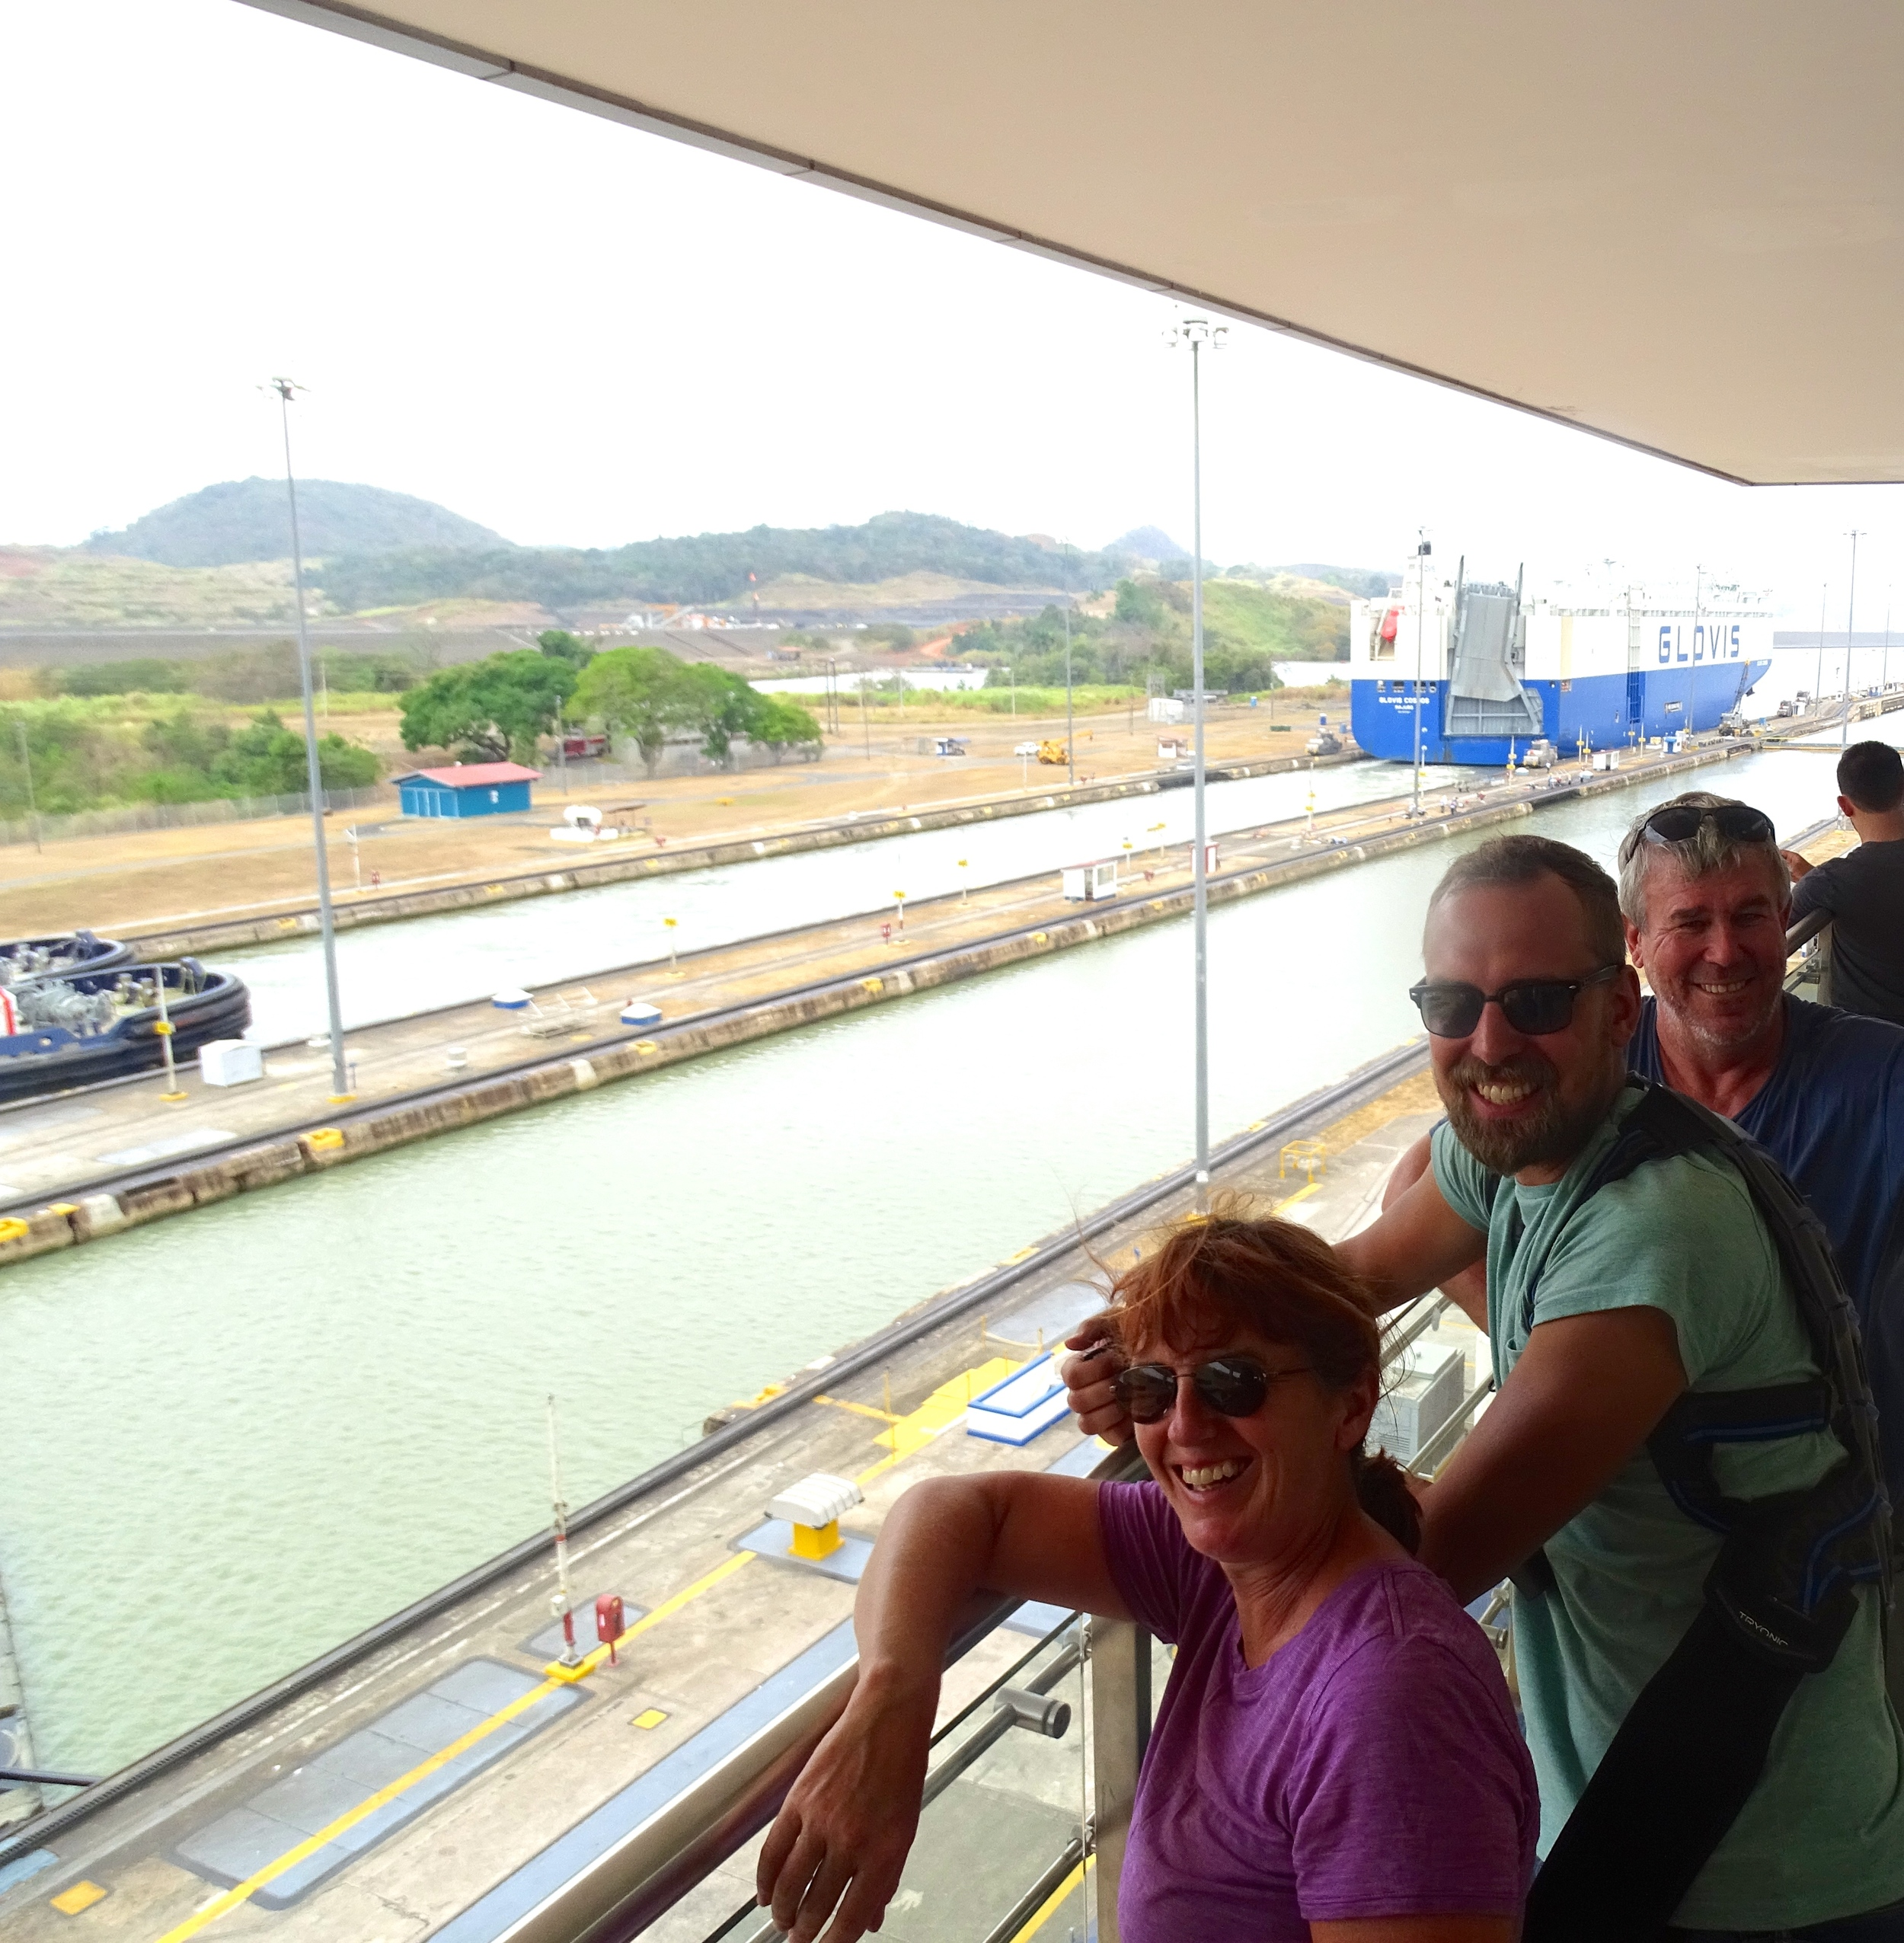 Jalene, Ondrej, and Peter in awe at the Panama Canal Locks.